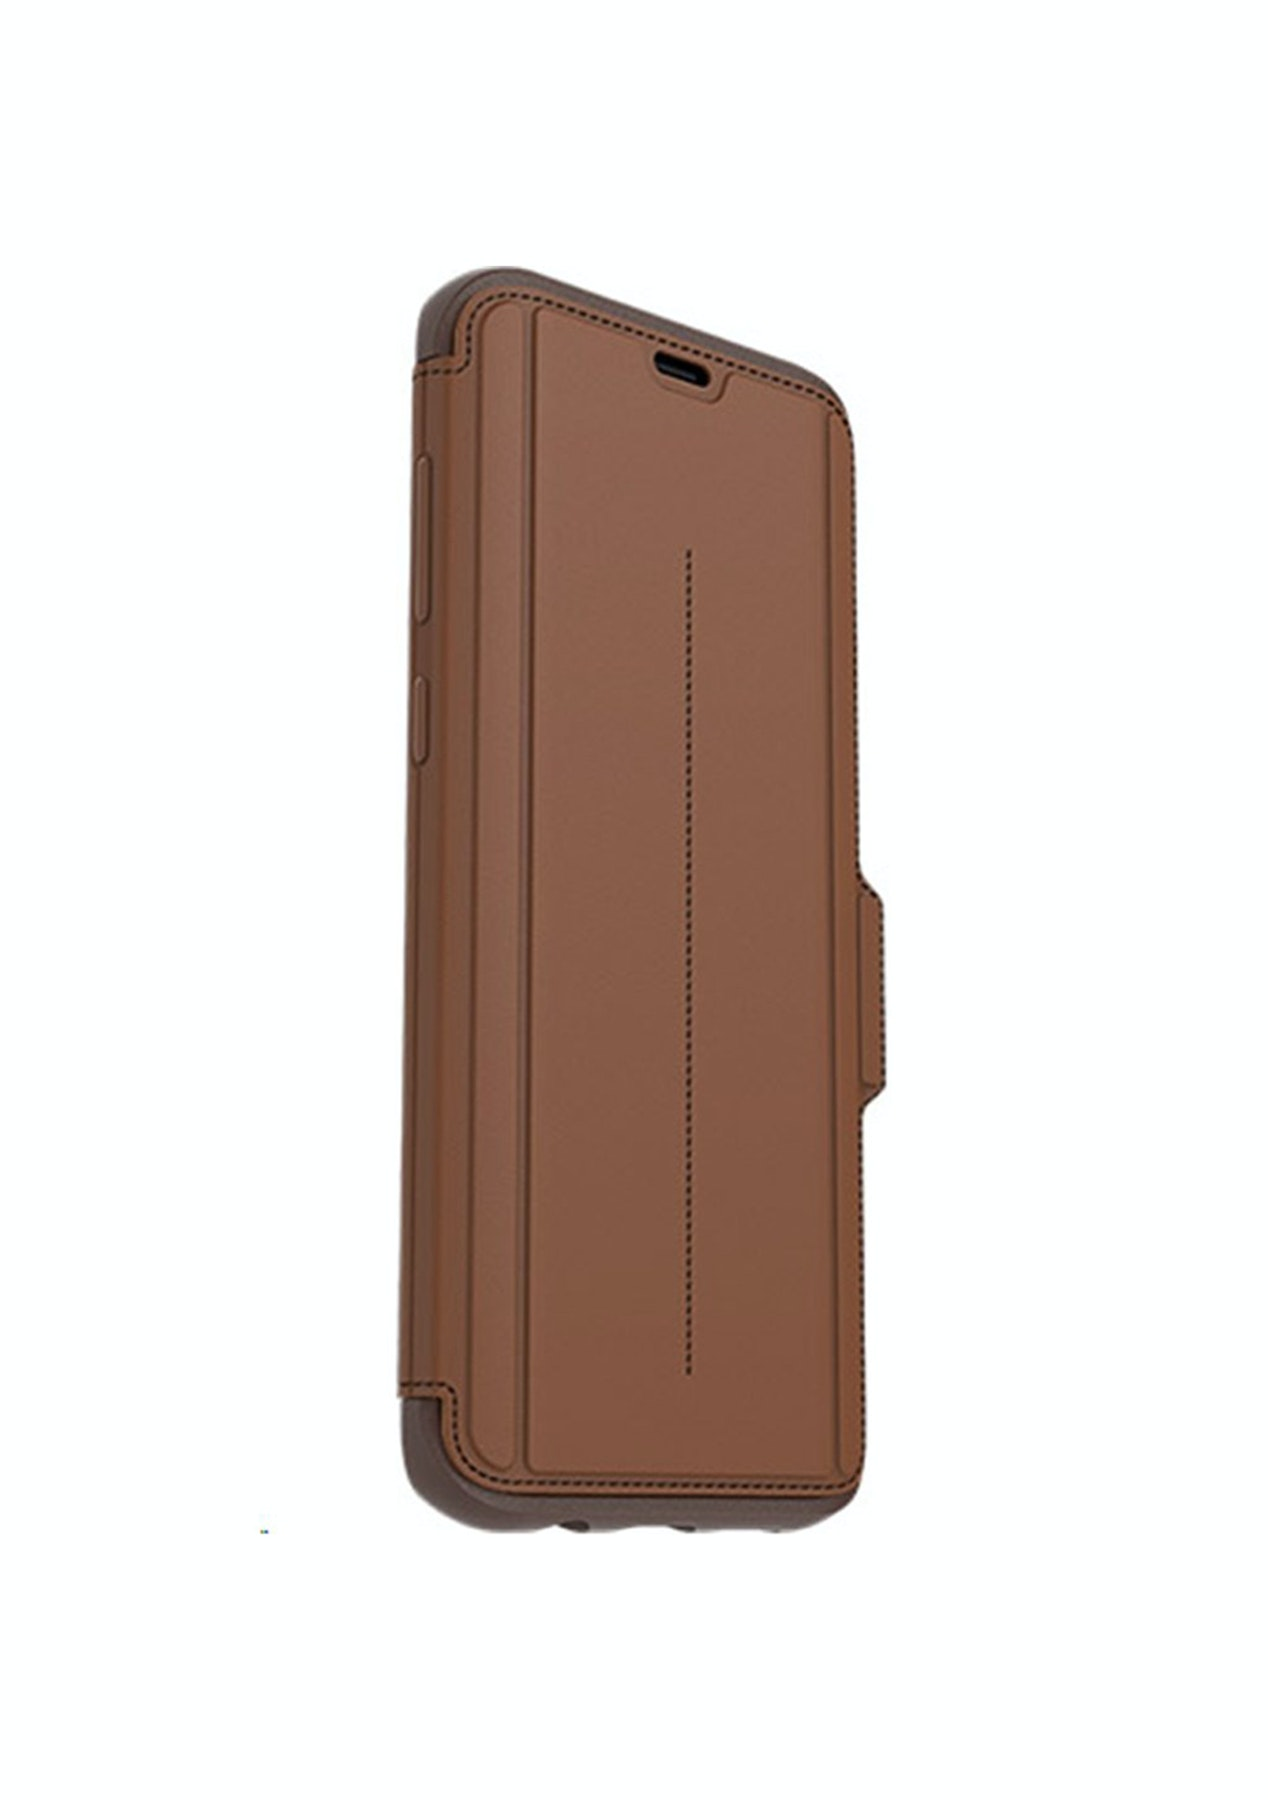 low priced d0a7d acf09 Samsung S8+ / S8 Plus OtterBox Strada Leather Folio Wallet Case - Tan